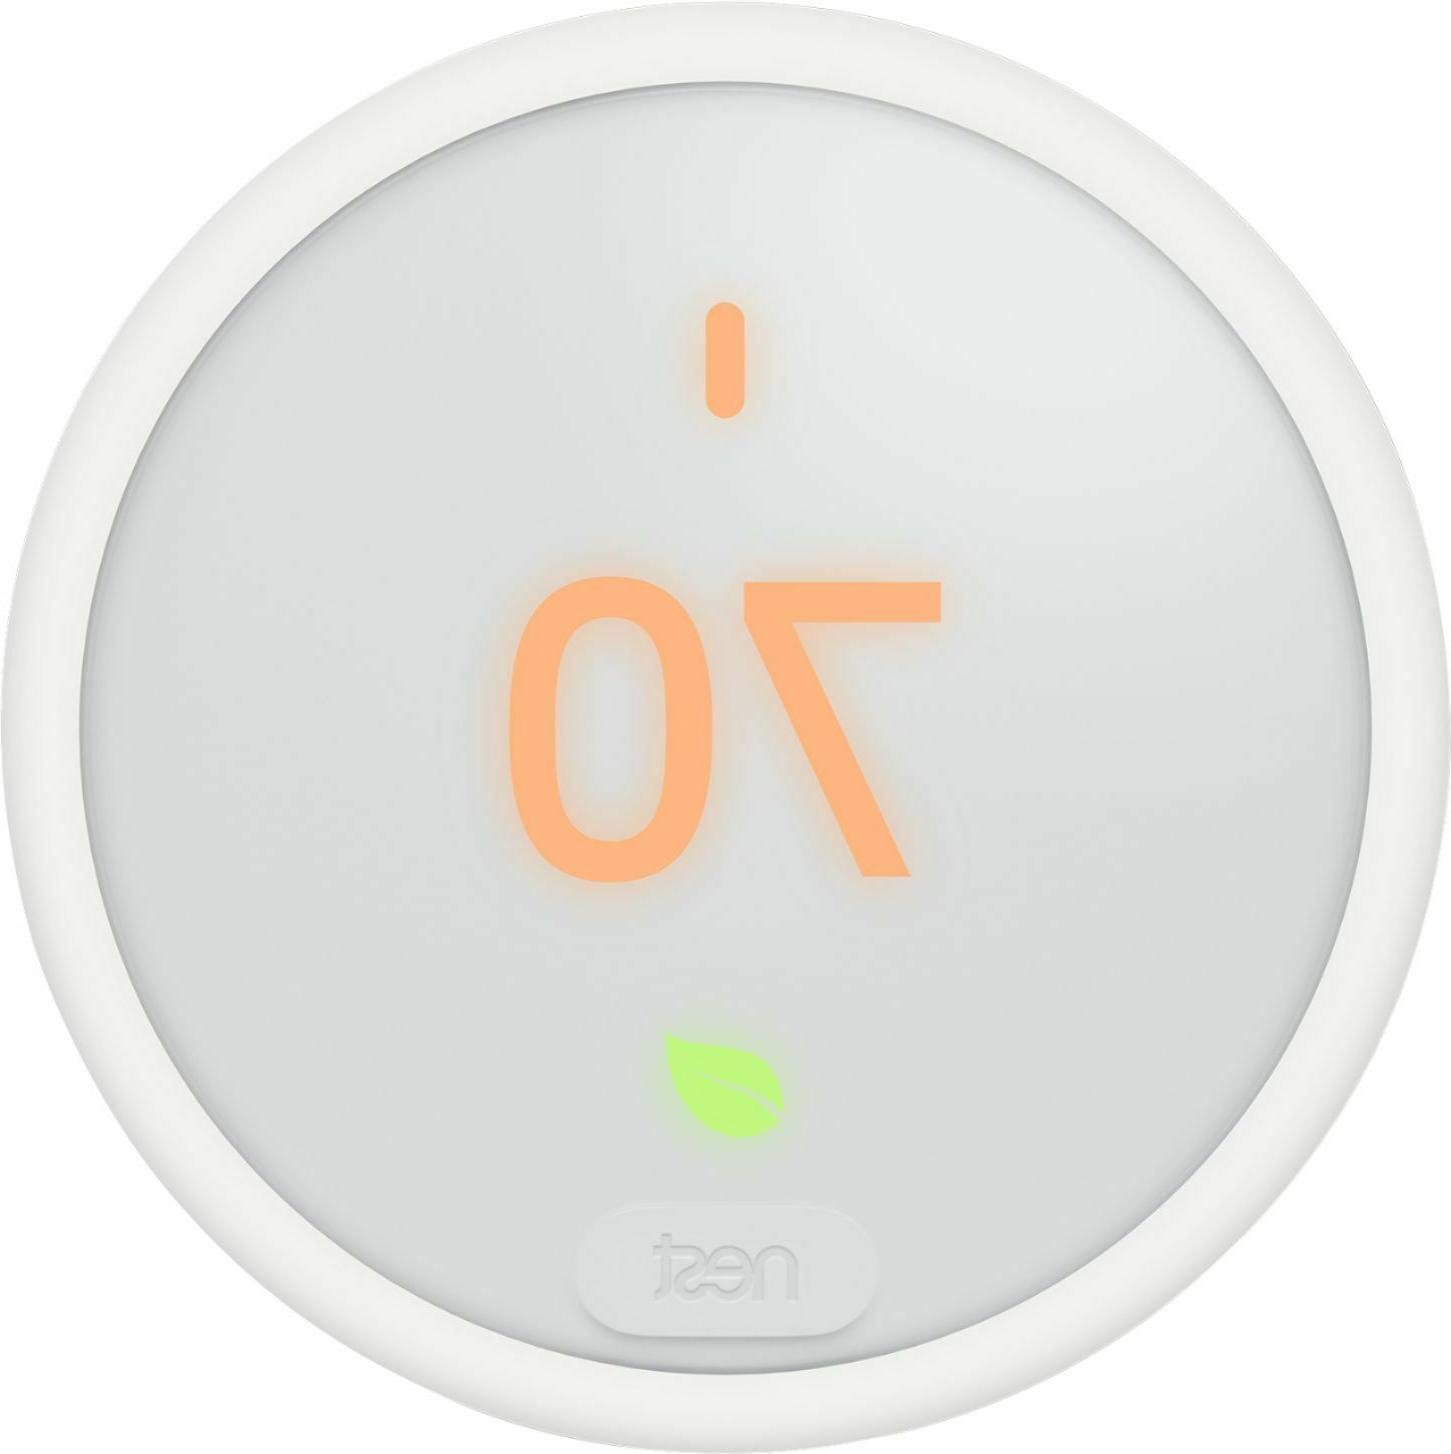 ecobee - ecobee4 Wi-Fi Thermostat w Room Sensor & Built-In A